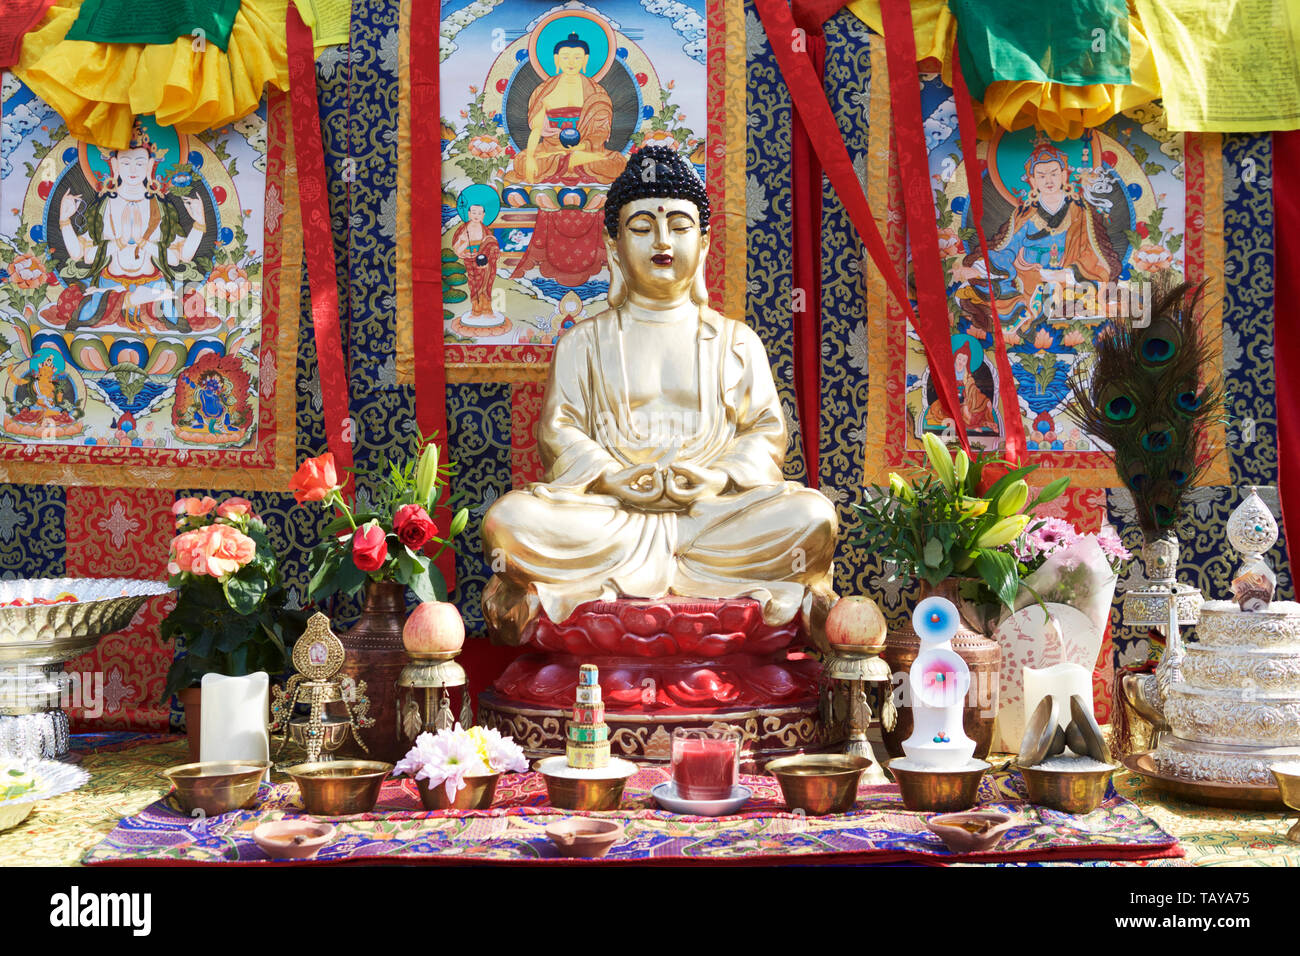 Eastern philosophy Buddhism: Lord buddha and prayer table. - Stock Image